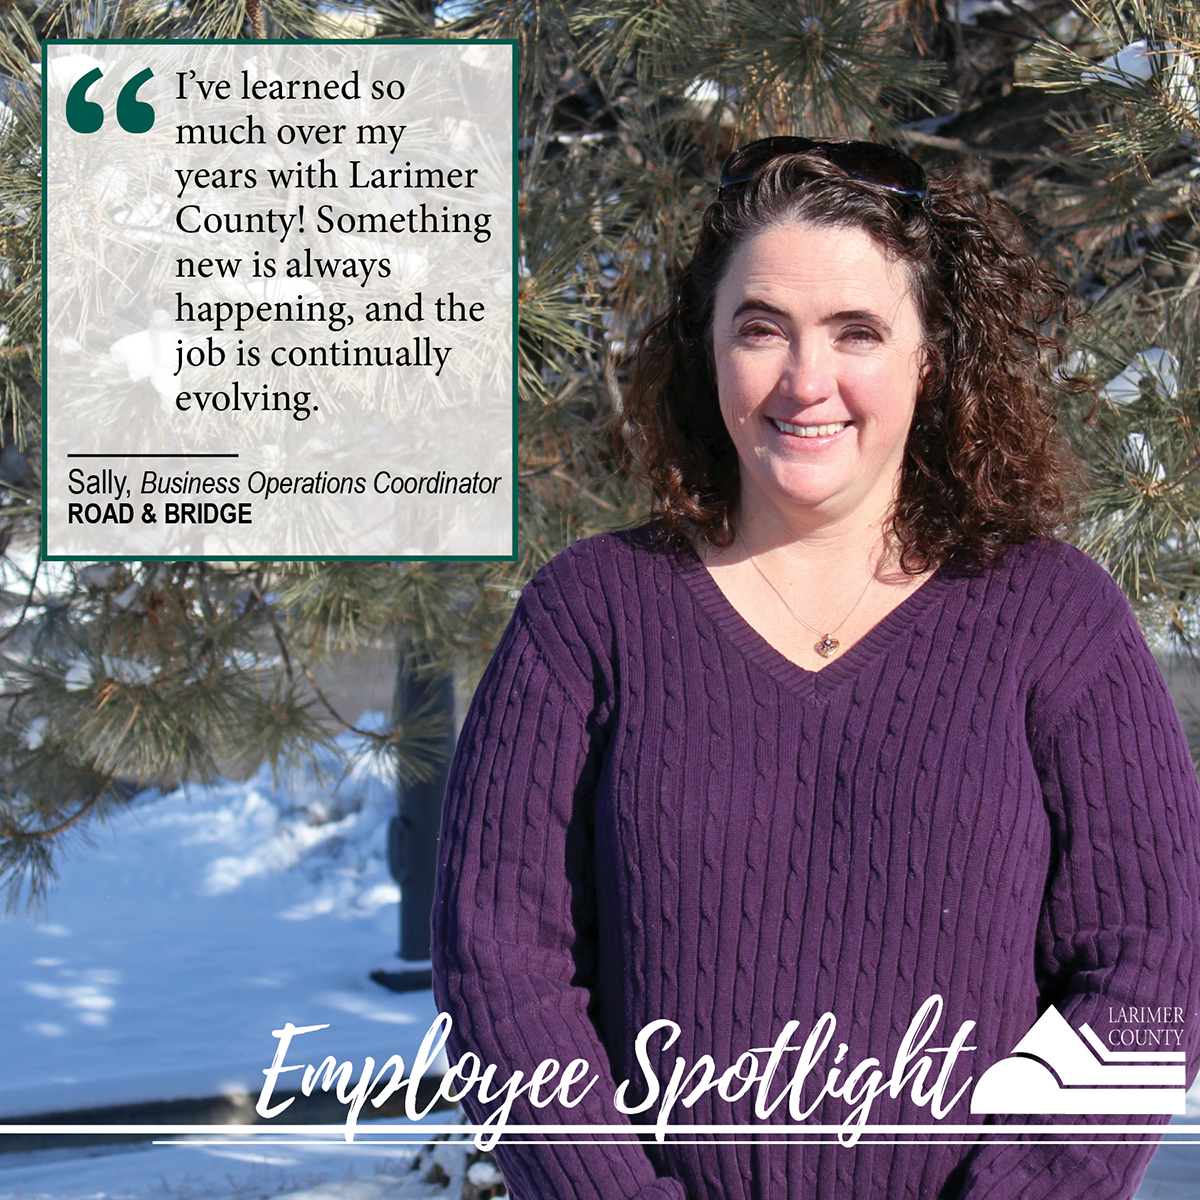 """Image 10: """"I've learned so much over my years with Larimer County! While the job here is stable, something new is always happening and the job is continually evolving."""""""